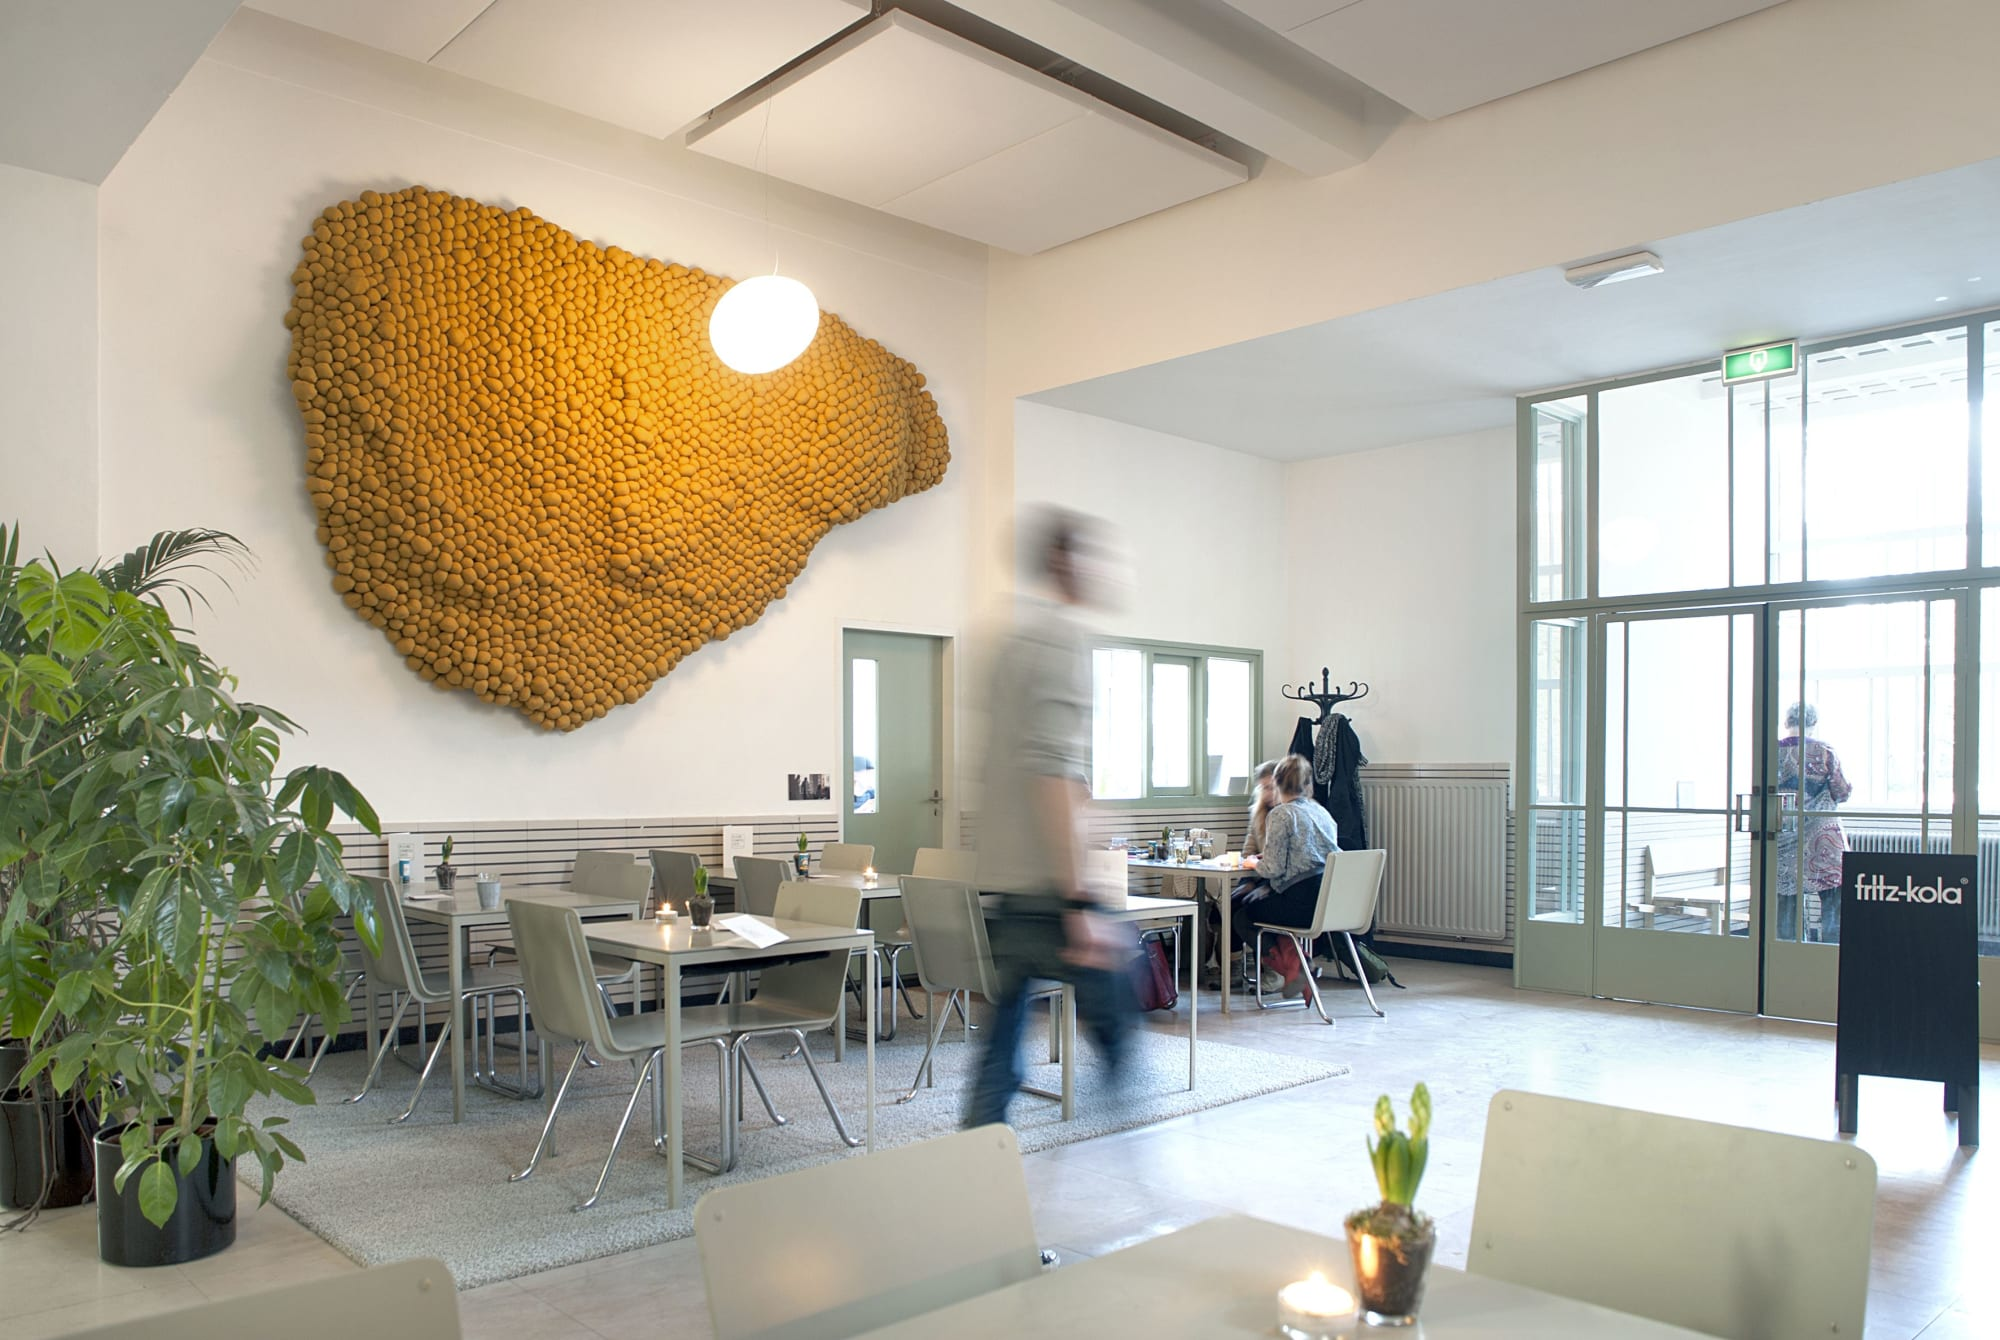 Large textile wall art in yellow ochre